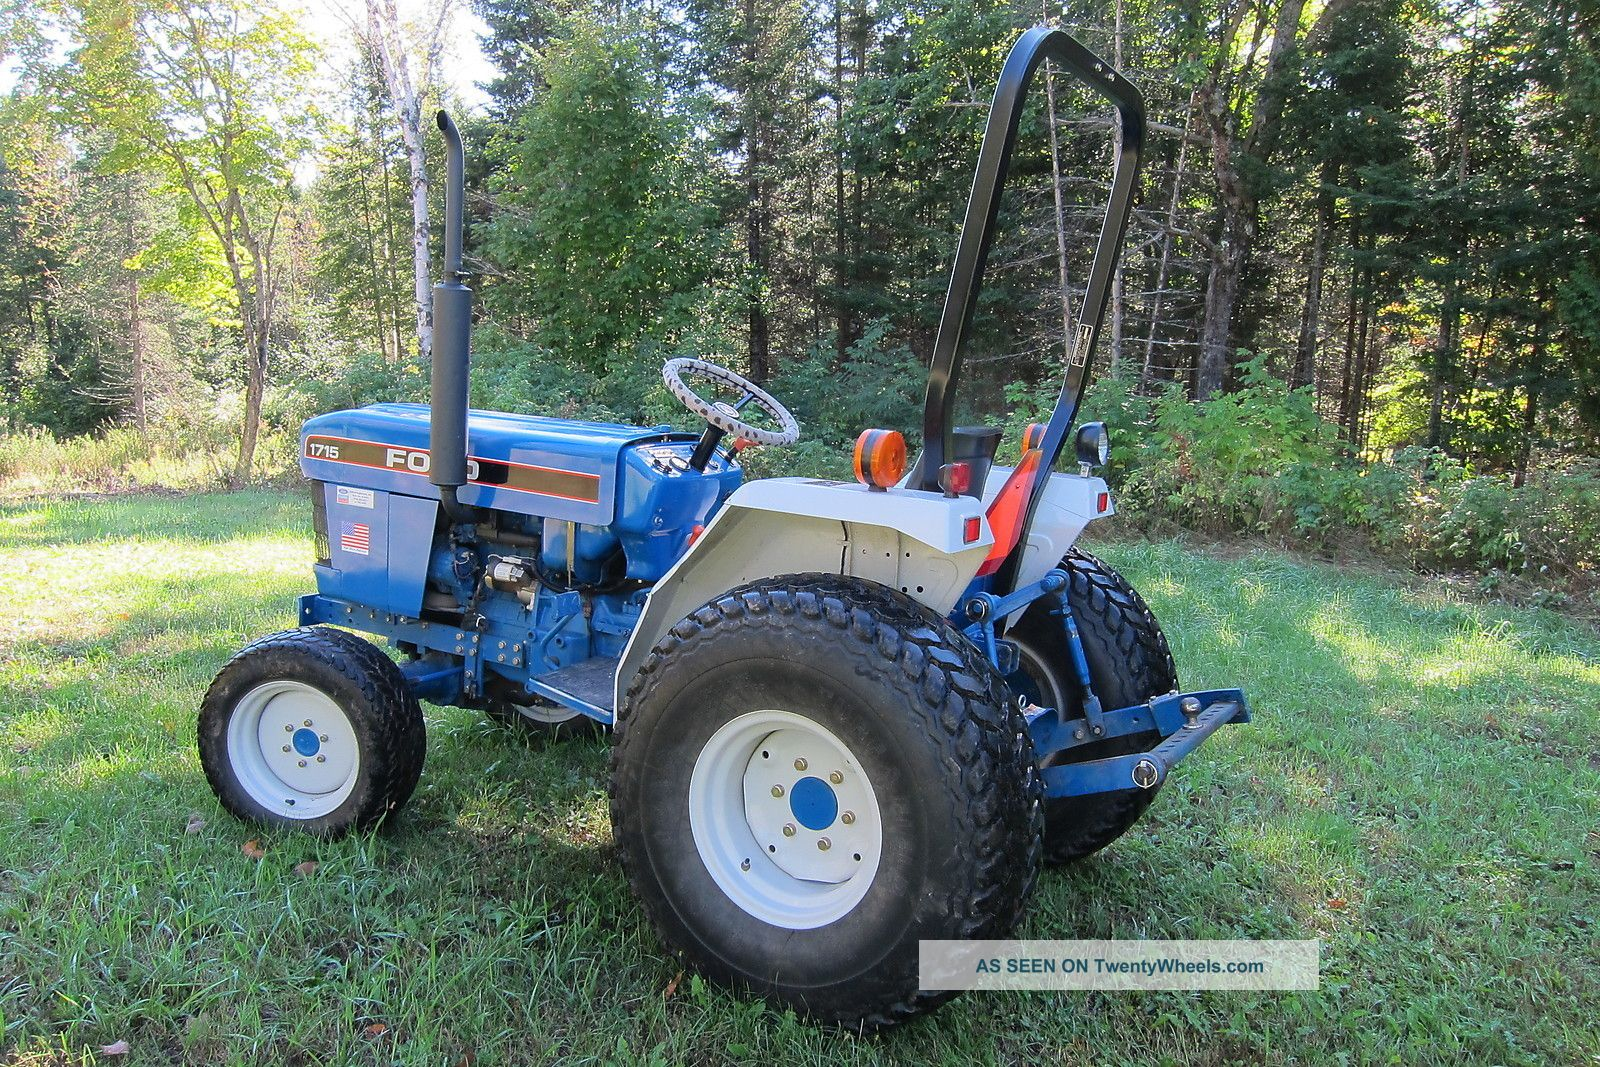 Ford Tractor Turf Tires : Ford holland diesel tractor farm garden turf